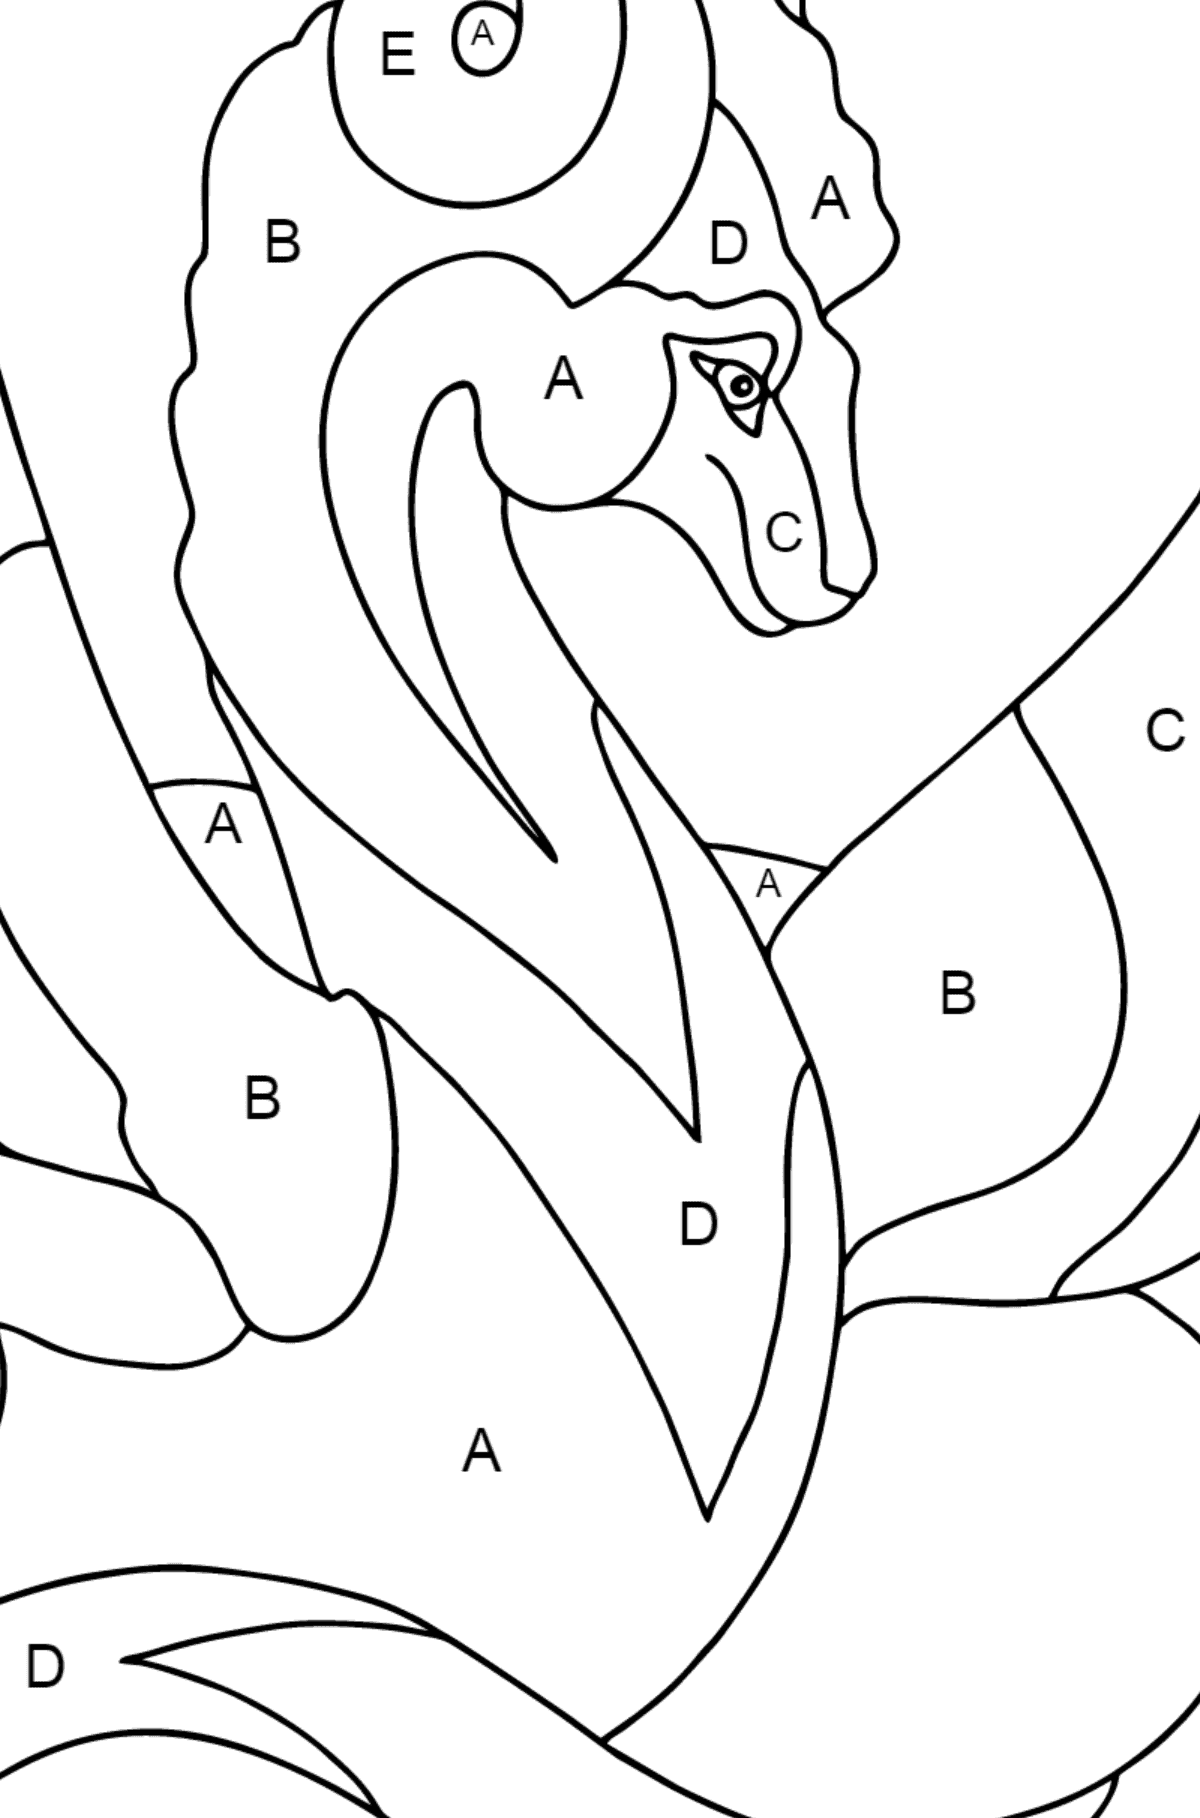 Coloring Page - A Dragon with a Long Multicolored Tail - Coloring by Letters for Kids